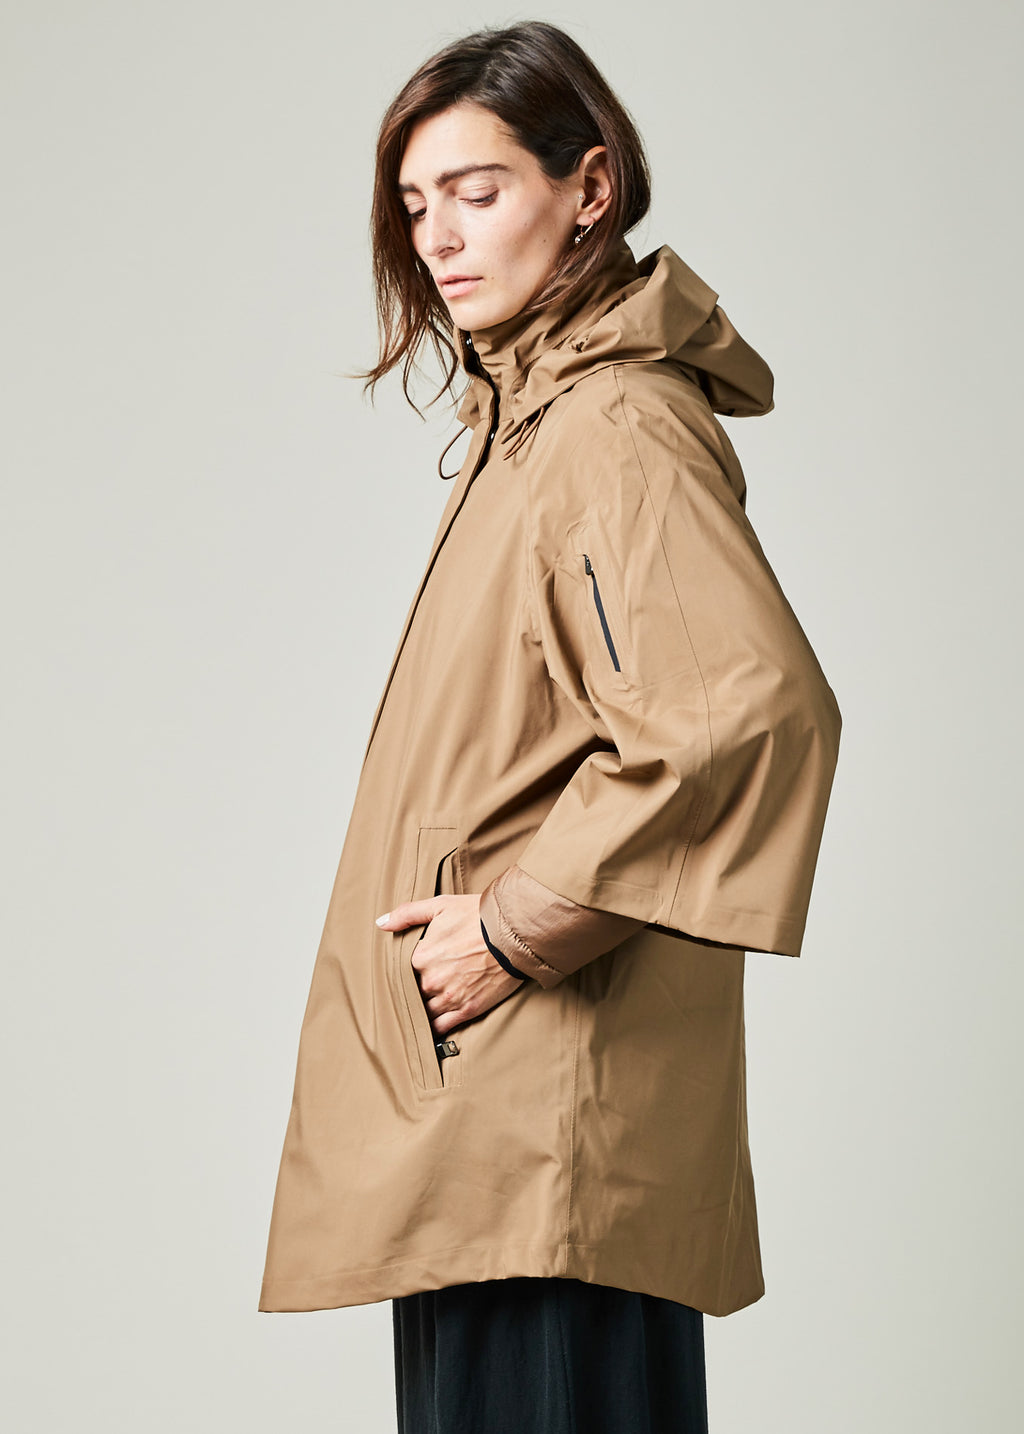 Nova Crop Sleeve Coat